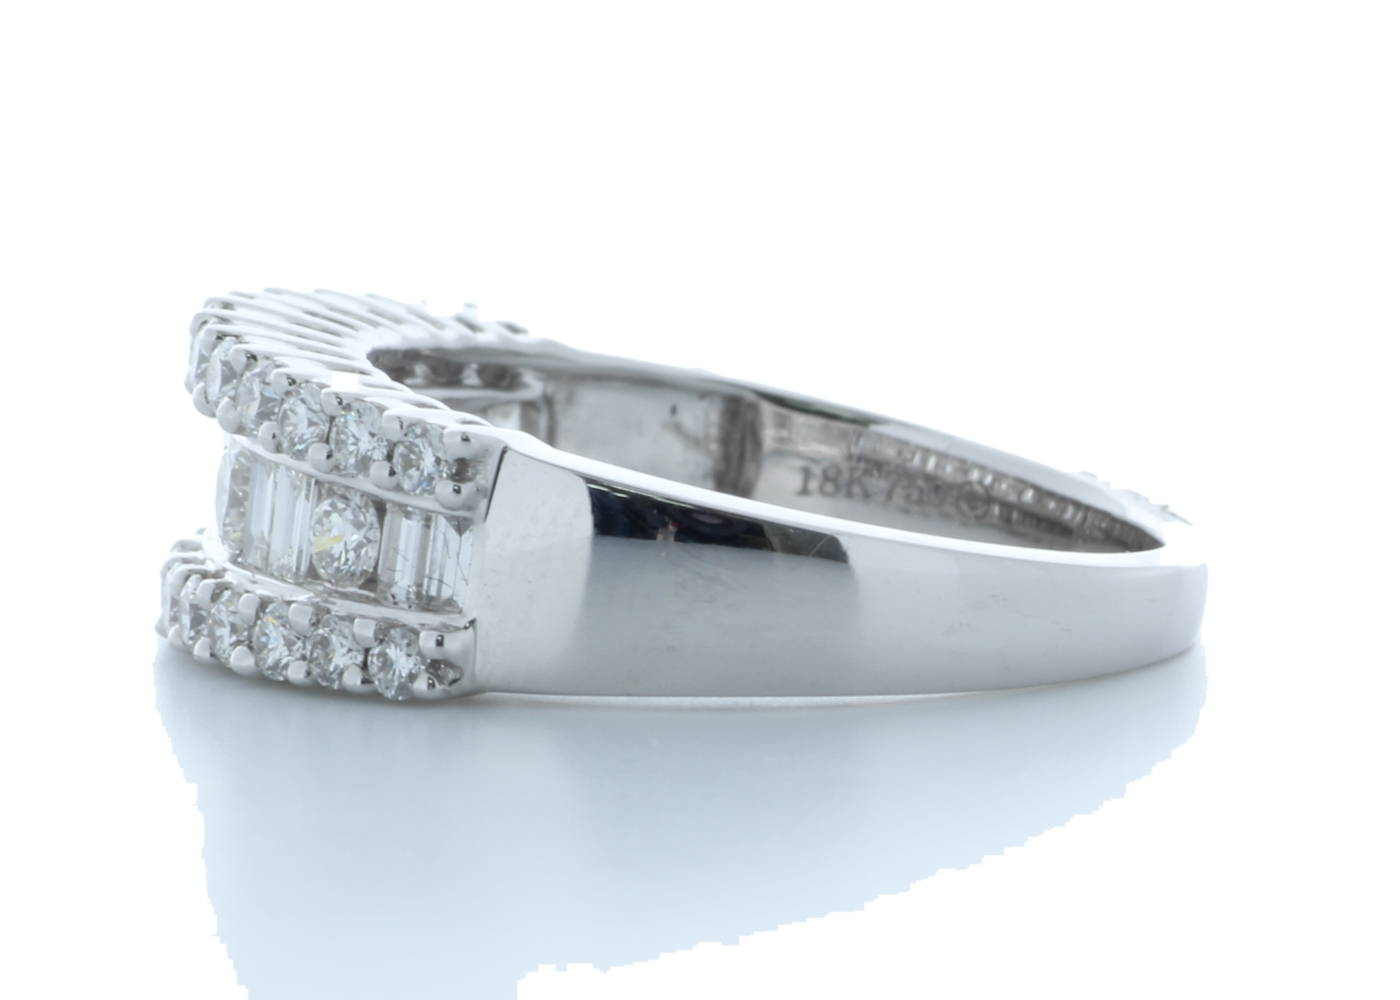 18ct White Gold Channel Set Semi Eternity Diamond Ring 0.95 Carats - Image 2 of 4